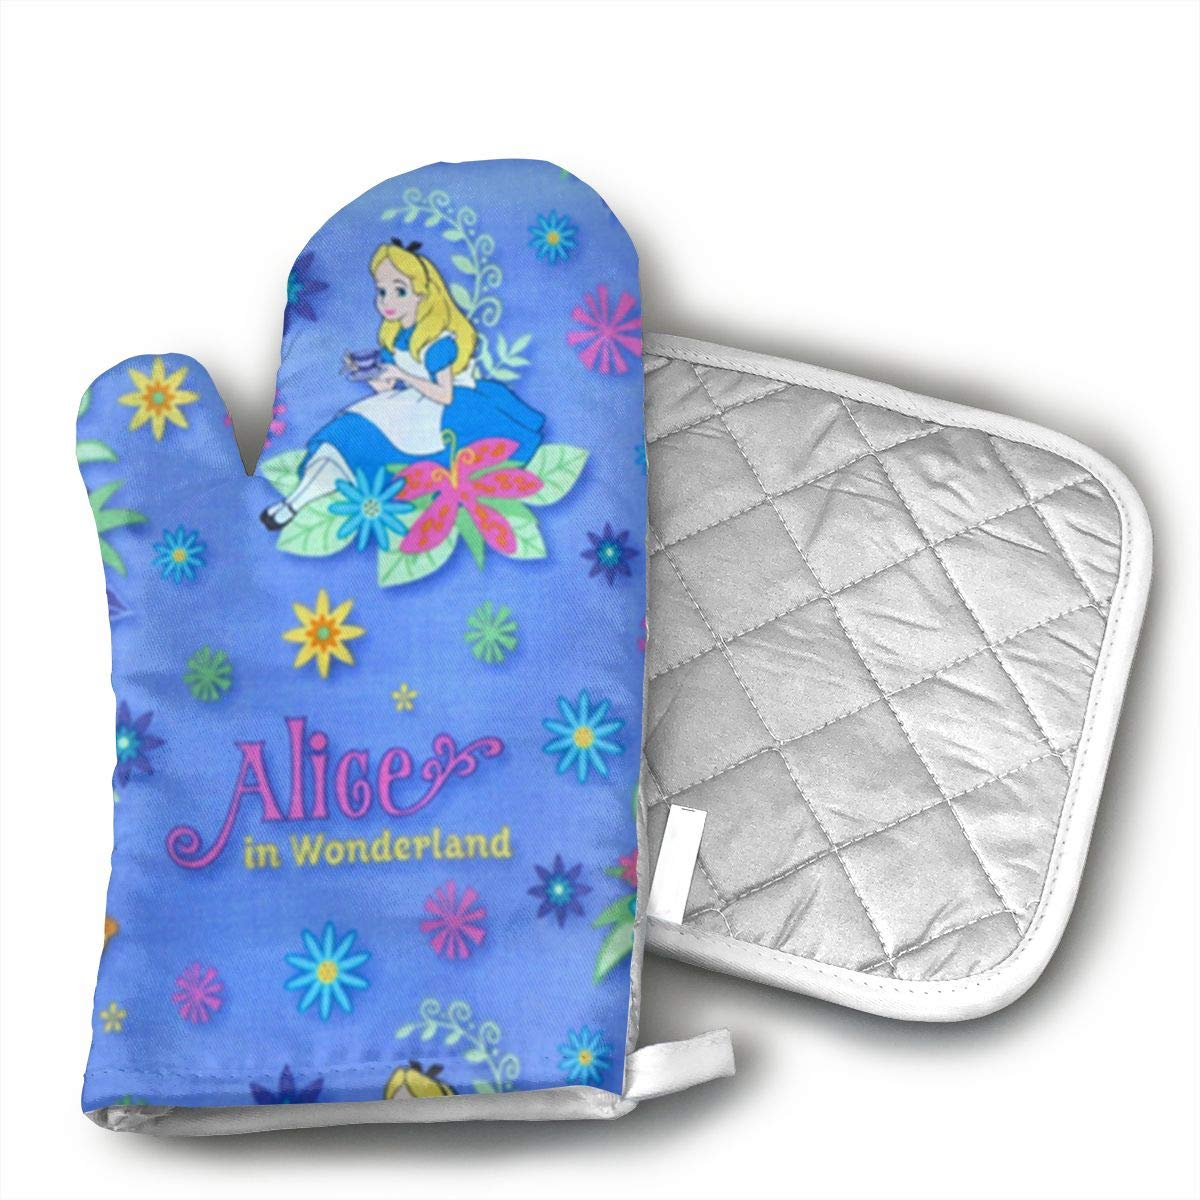 mnbhgg Alice in Wonderland Oven Gloves Microwave Gloves Barbecue Gloves Kitchen Cooking Bake Heat Resistant Gloves Combination